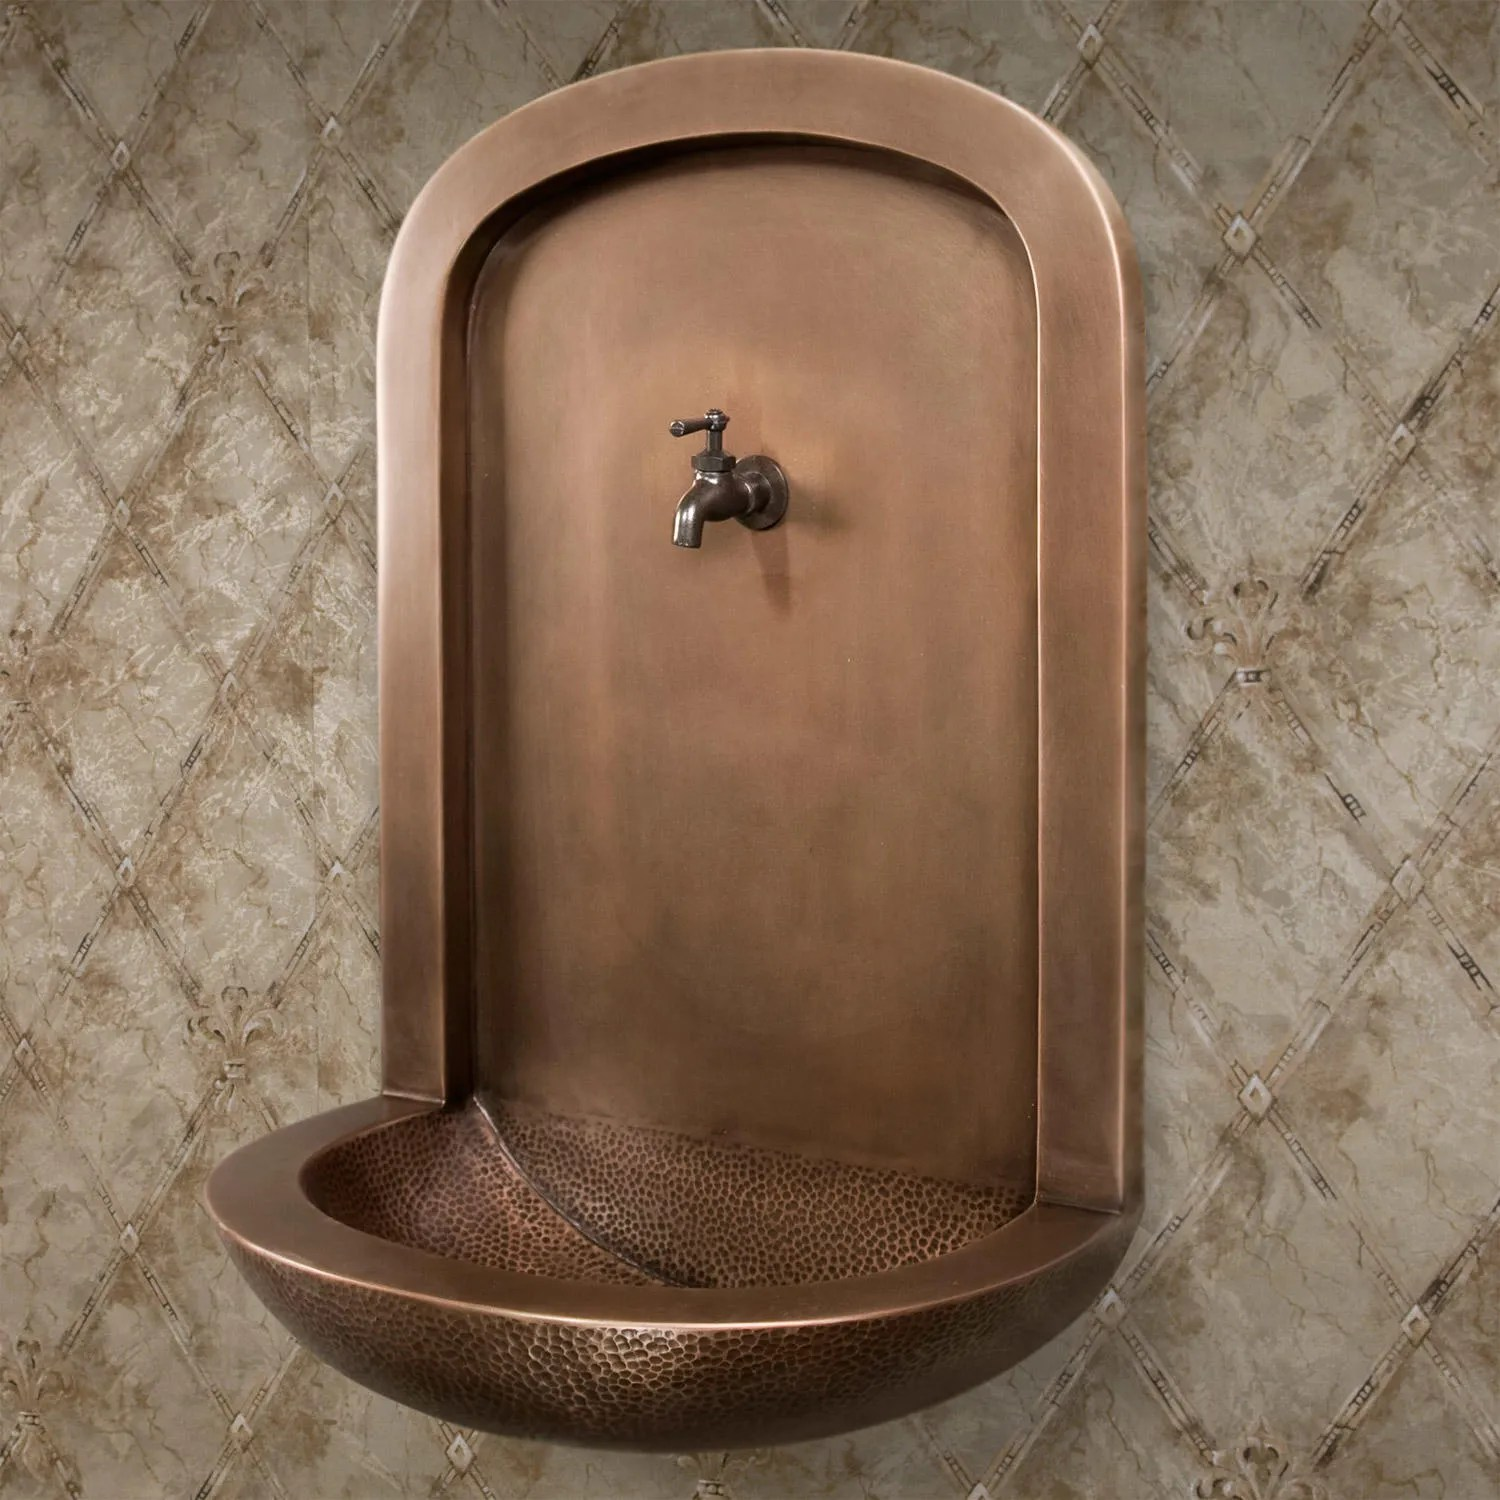 Installer Robinet Exterieur Double Sink Copper Wall Fountain With Faucet - Outdoor